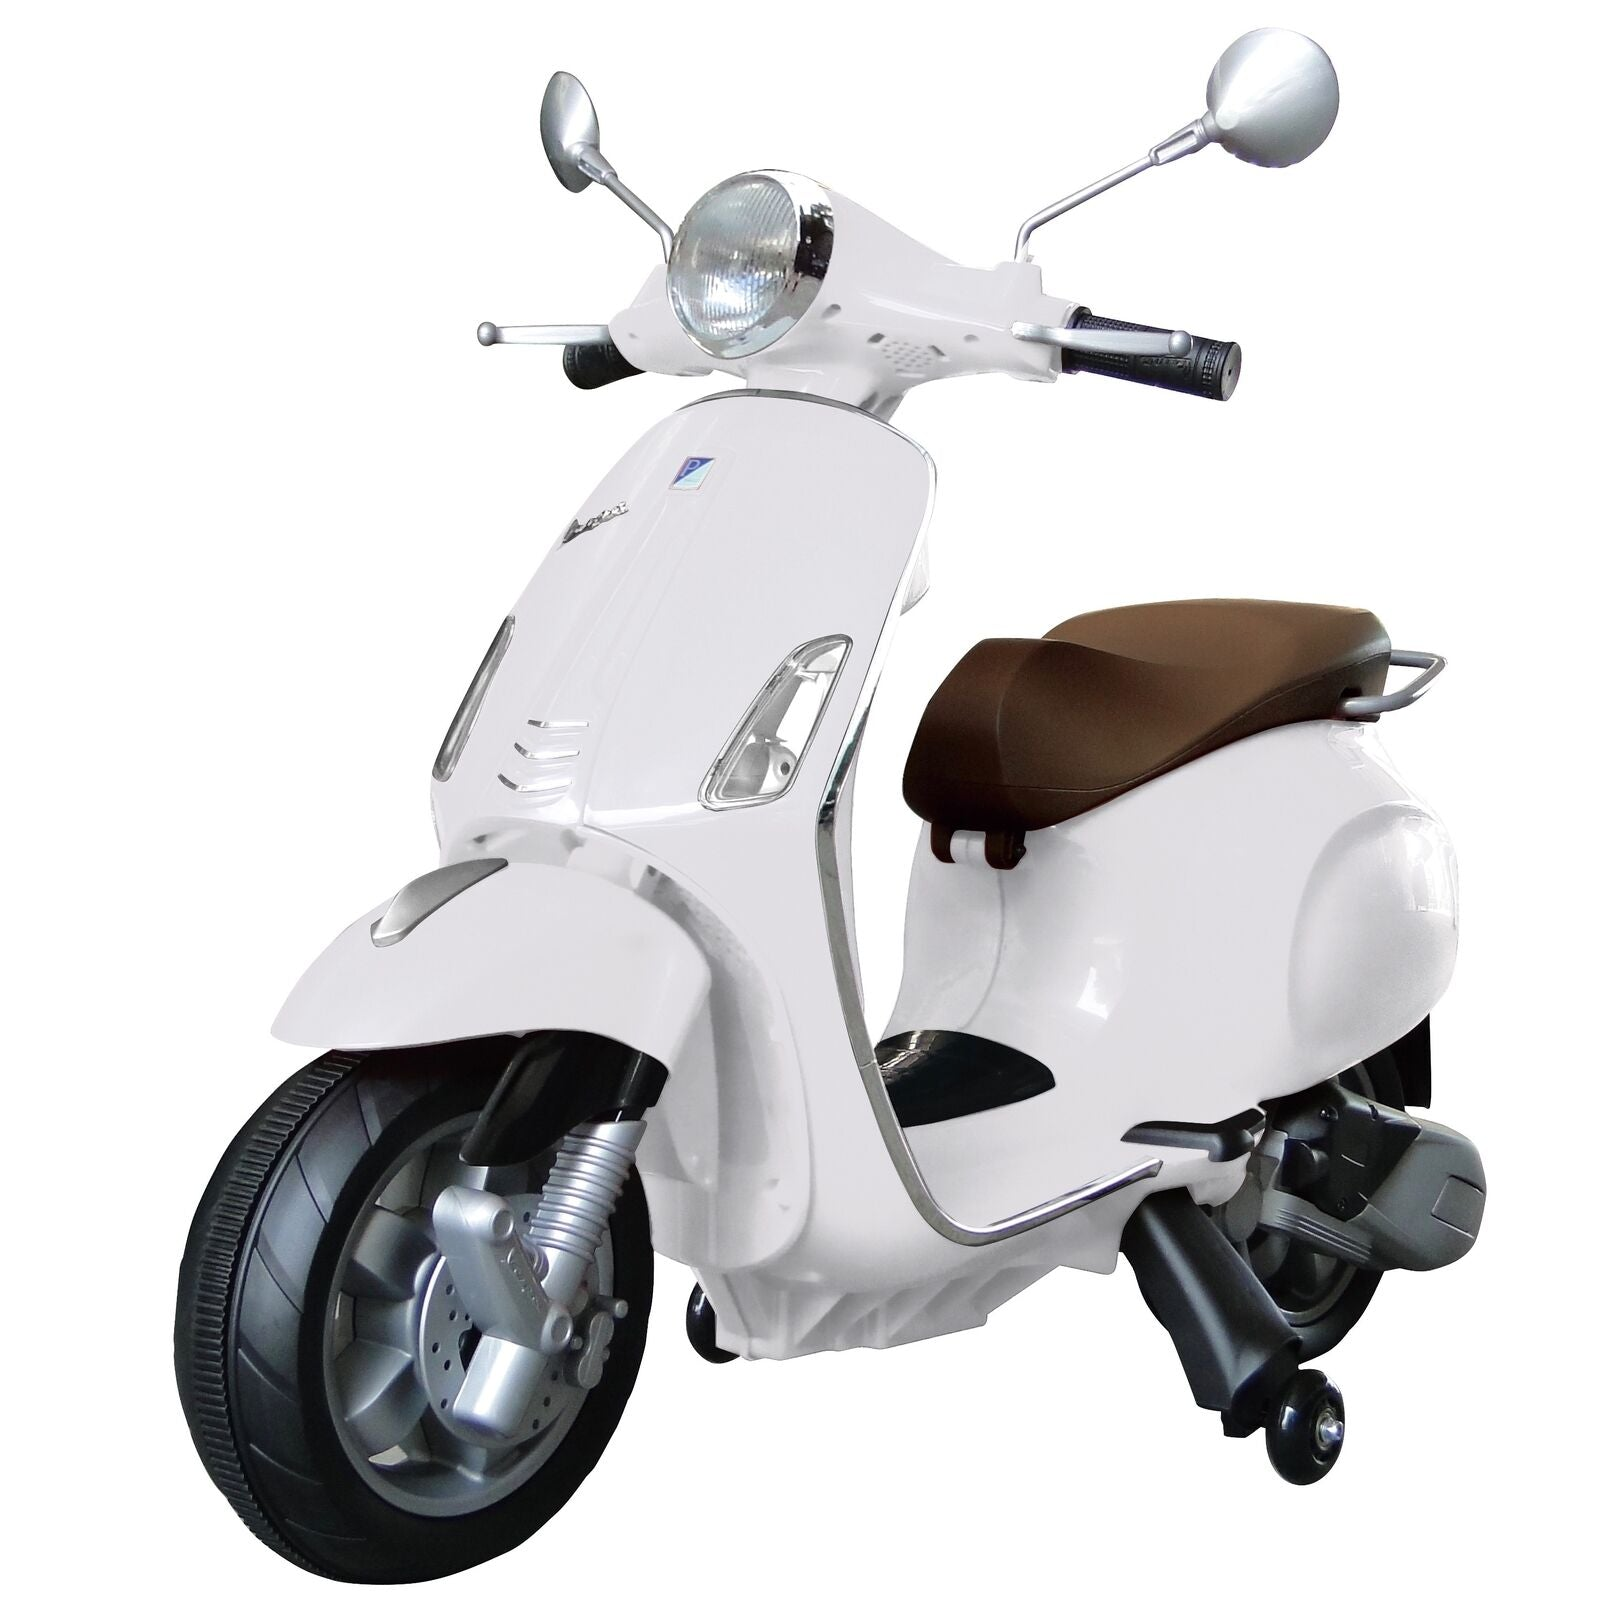 Vespa Primavera 12V Ride On Kids Scooter - White